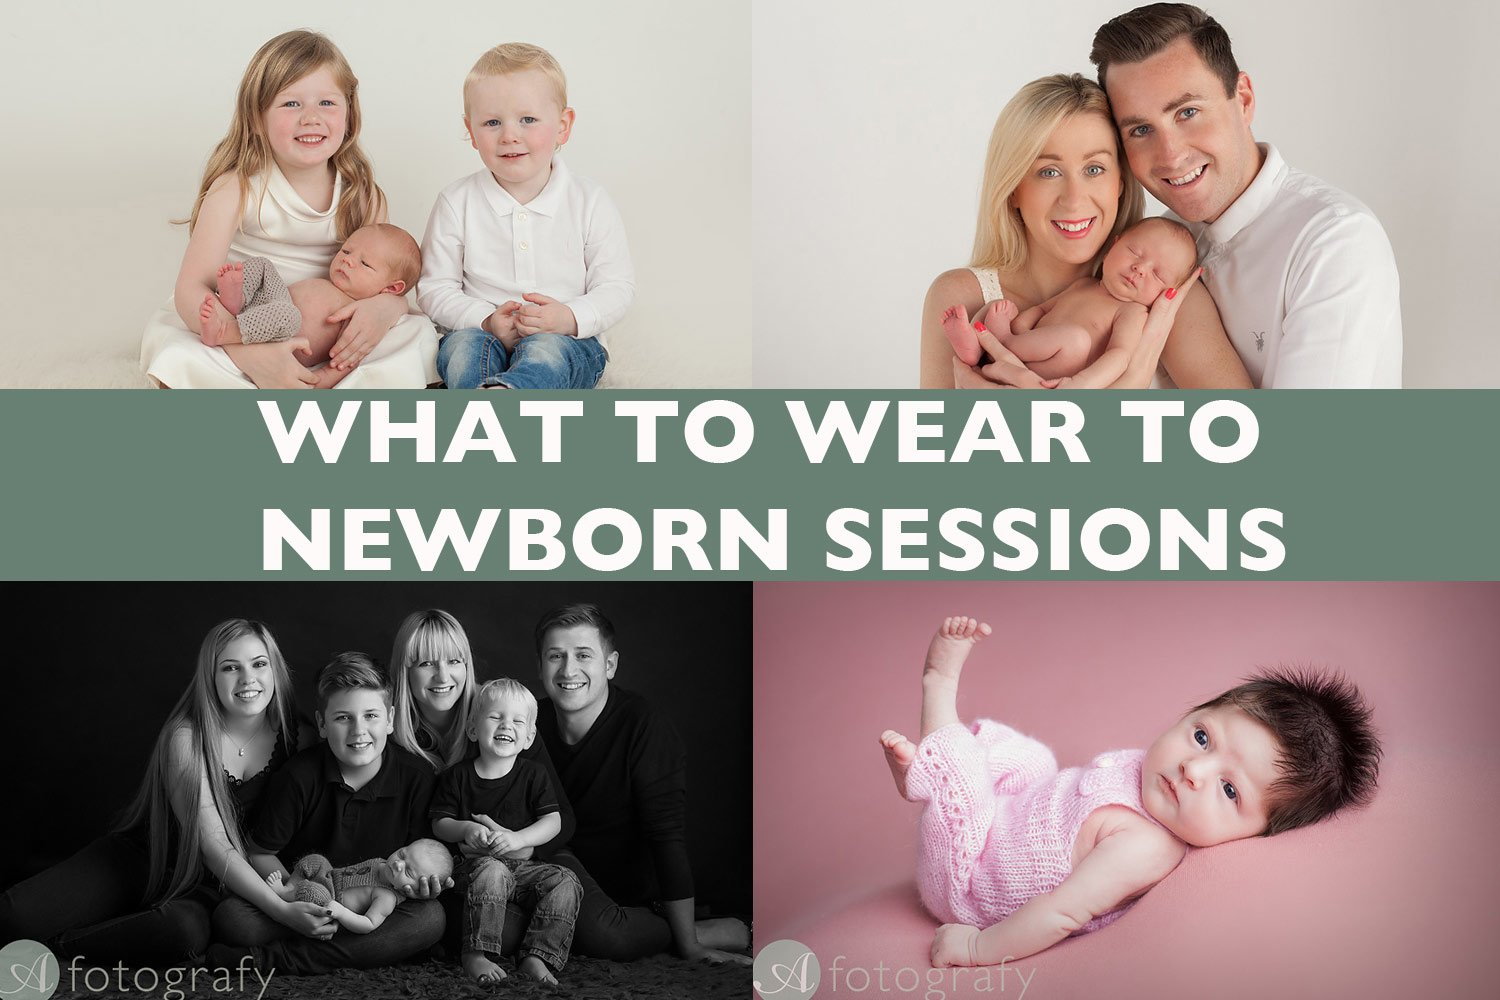 What to wear for a newborn photoshoot guide for families.